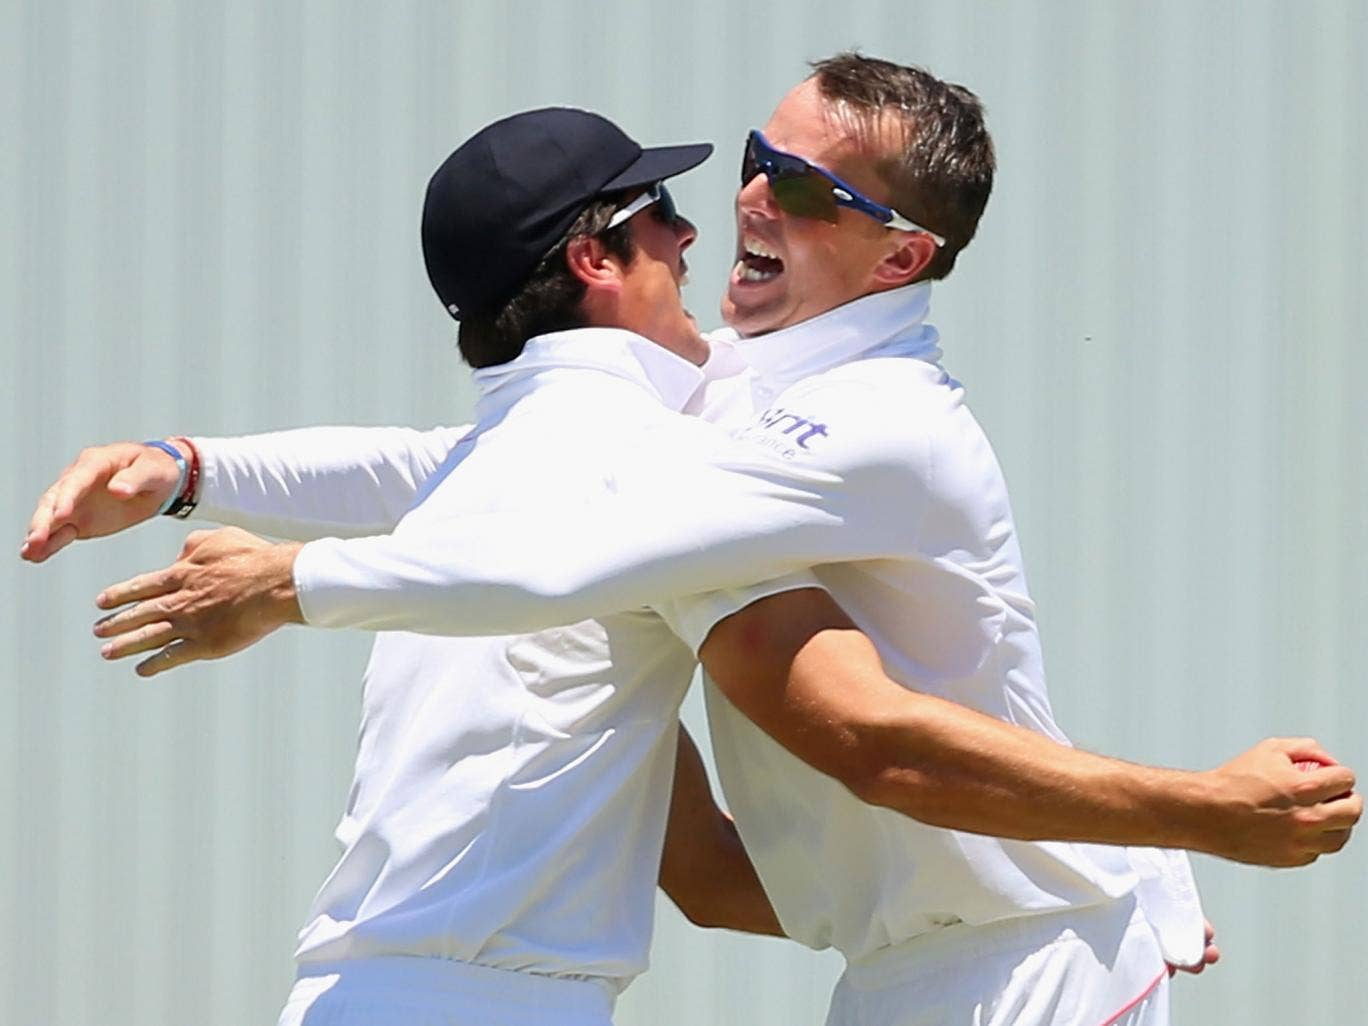 Alastair Cook and Graeme Swann celebrate during the 2013-14 Ashes Series in Australia